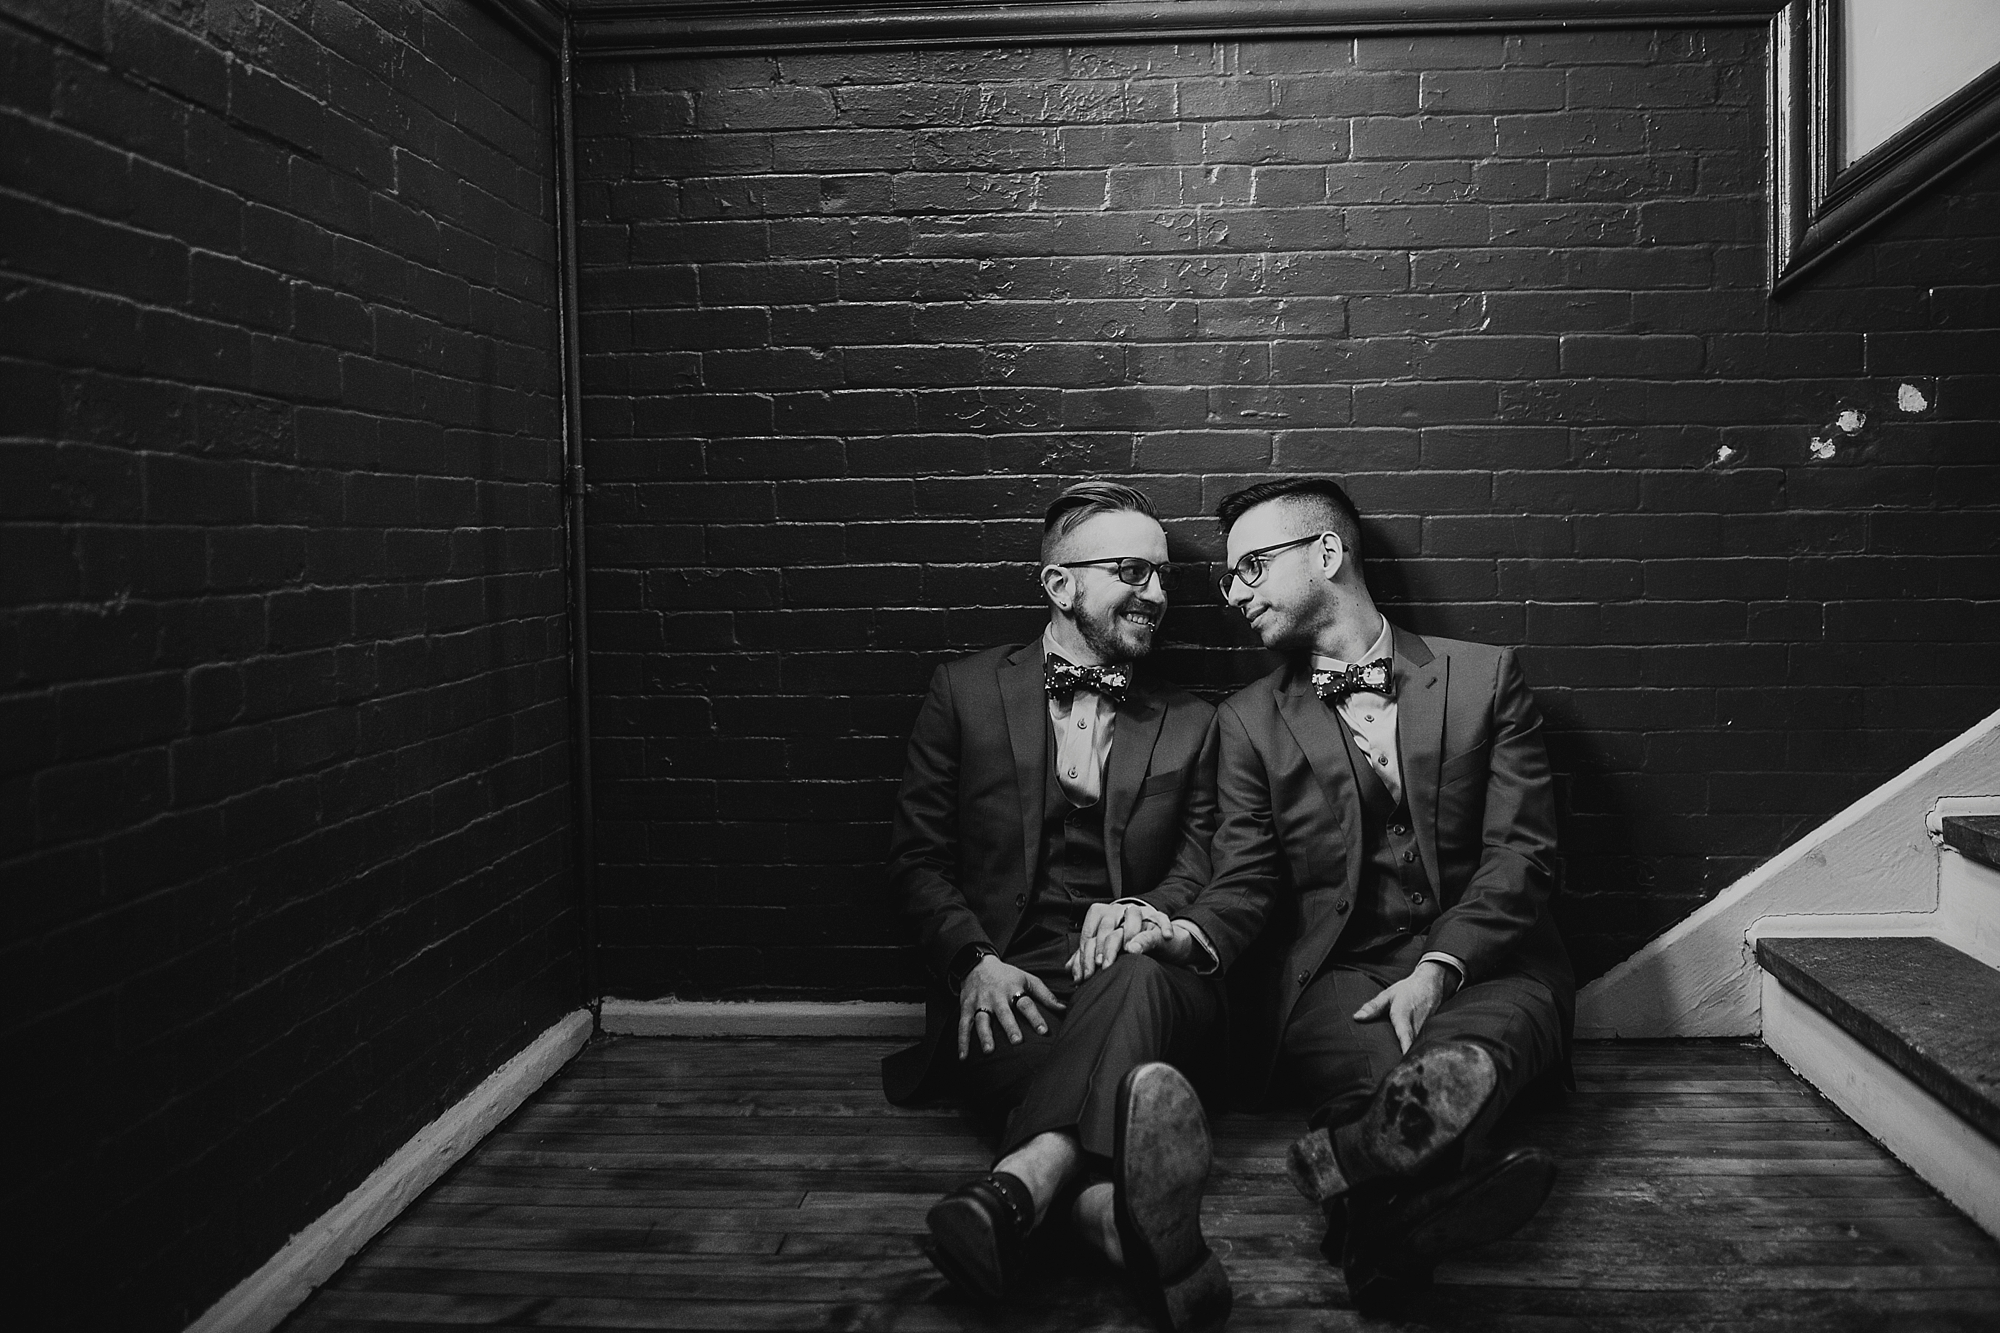 Joe_Mac_Creative_Philadelphia_Philly_LGBT_Gay_Engagement_Wedding_Photography__0109.jpg